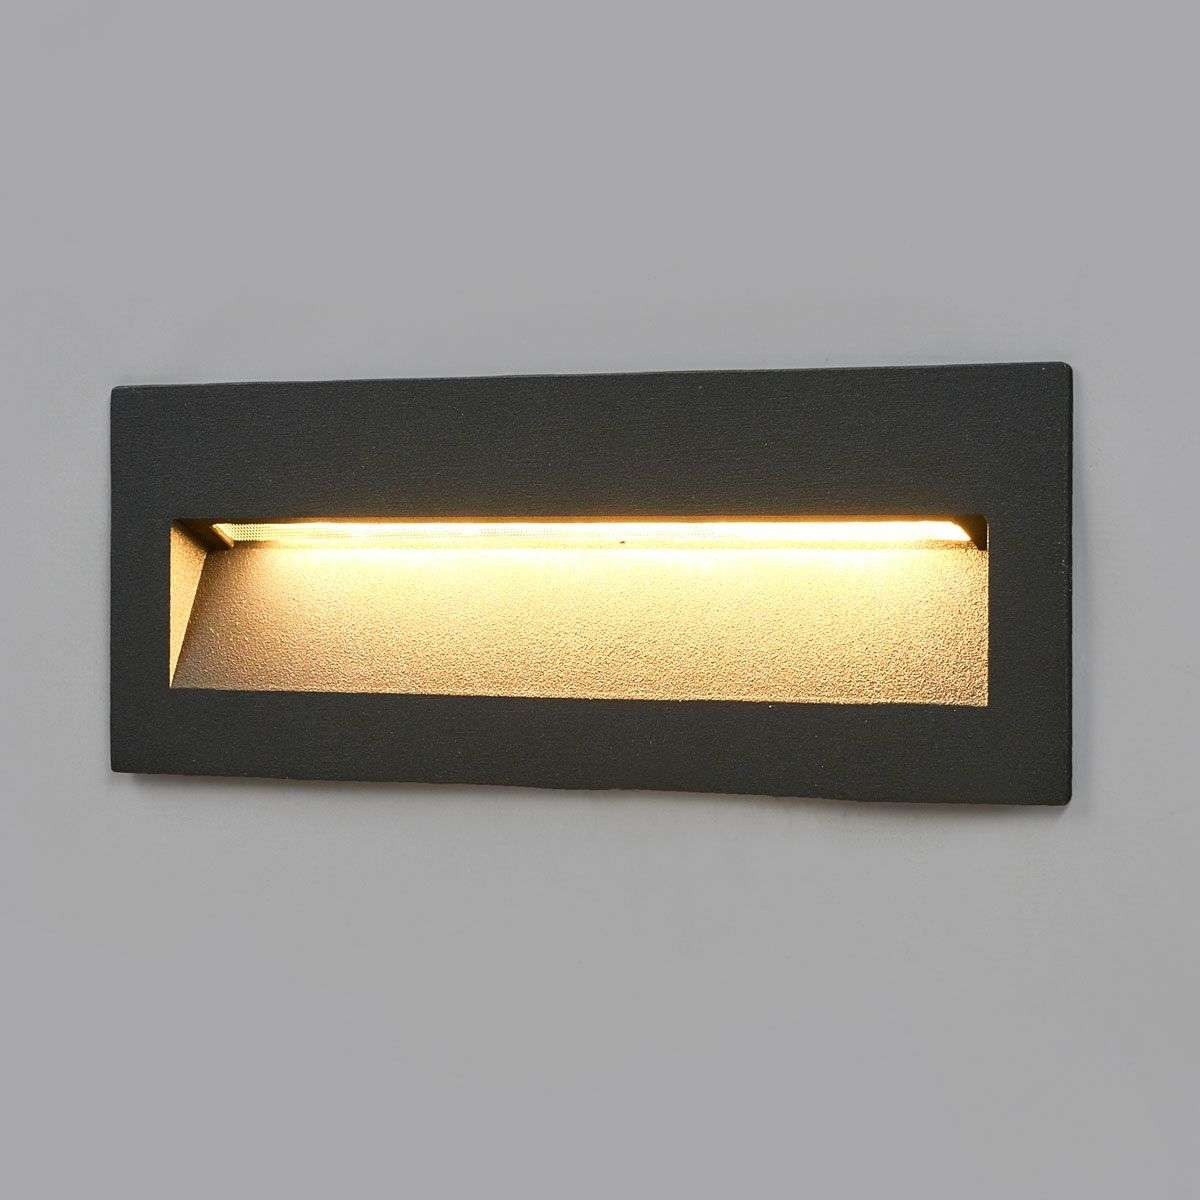 Dark led recessed light loya for outdoor walls for Eclairage exterieur led mural